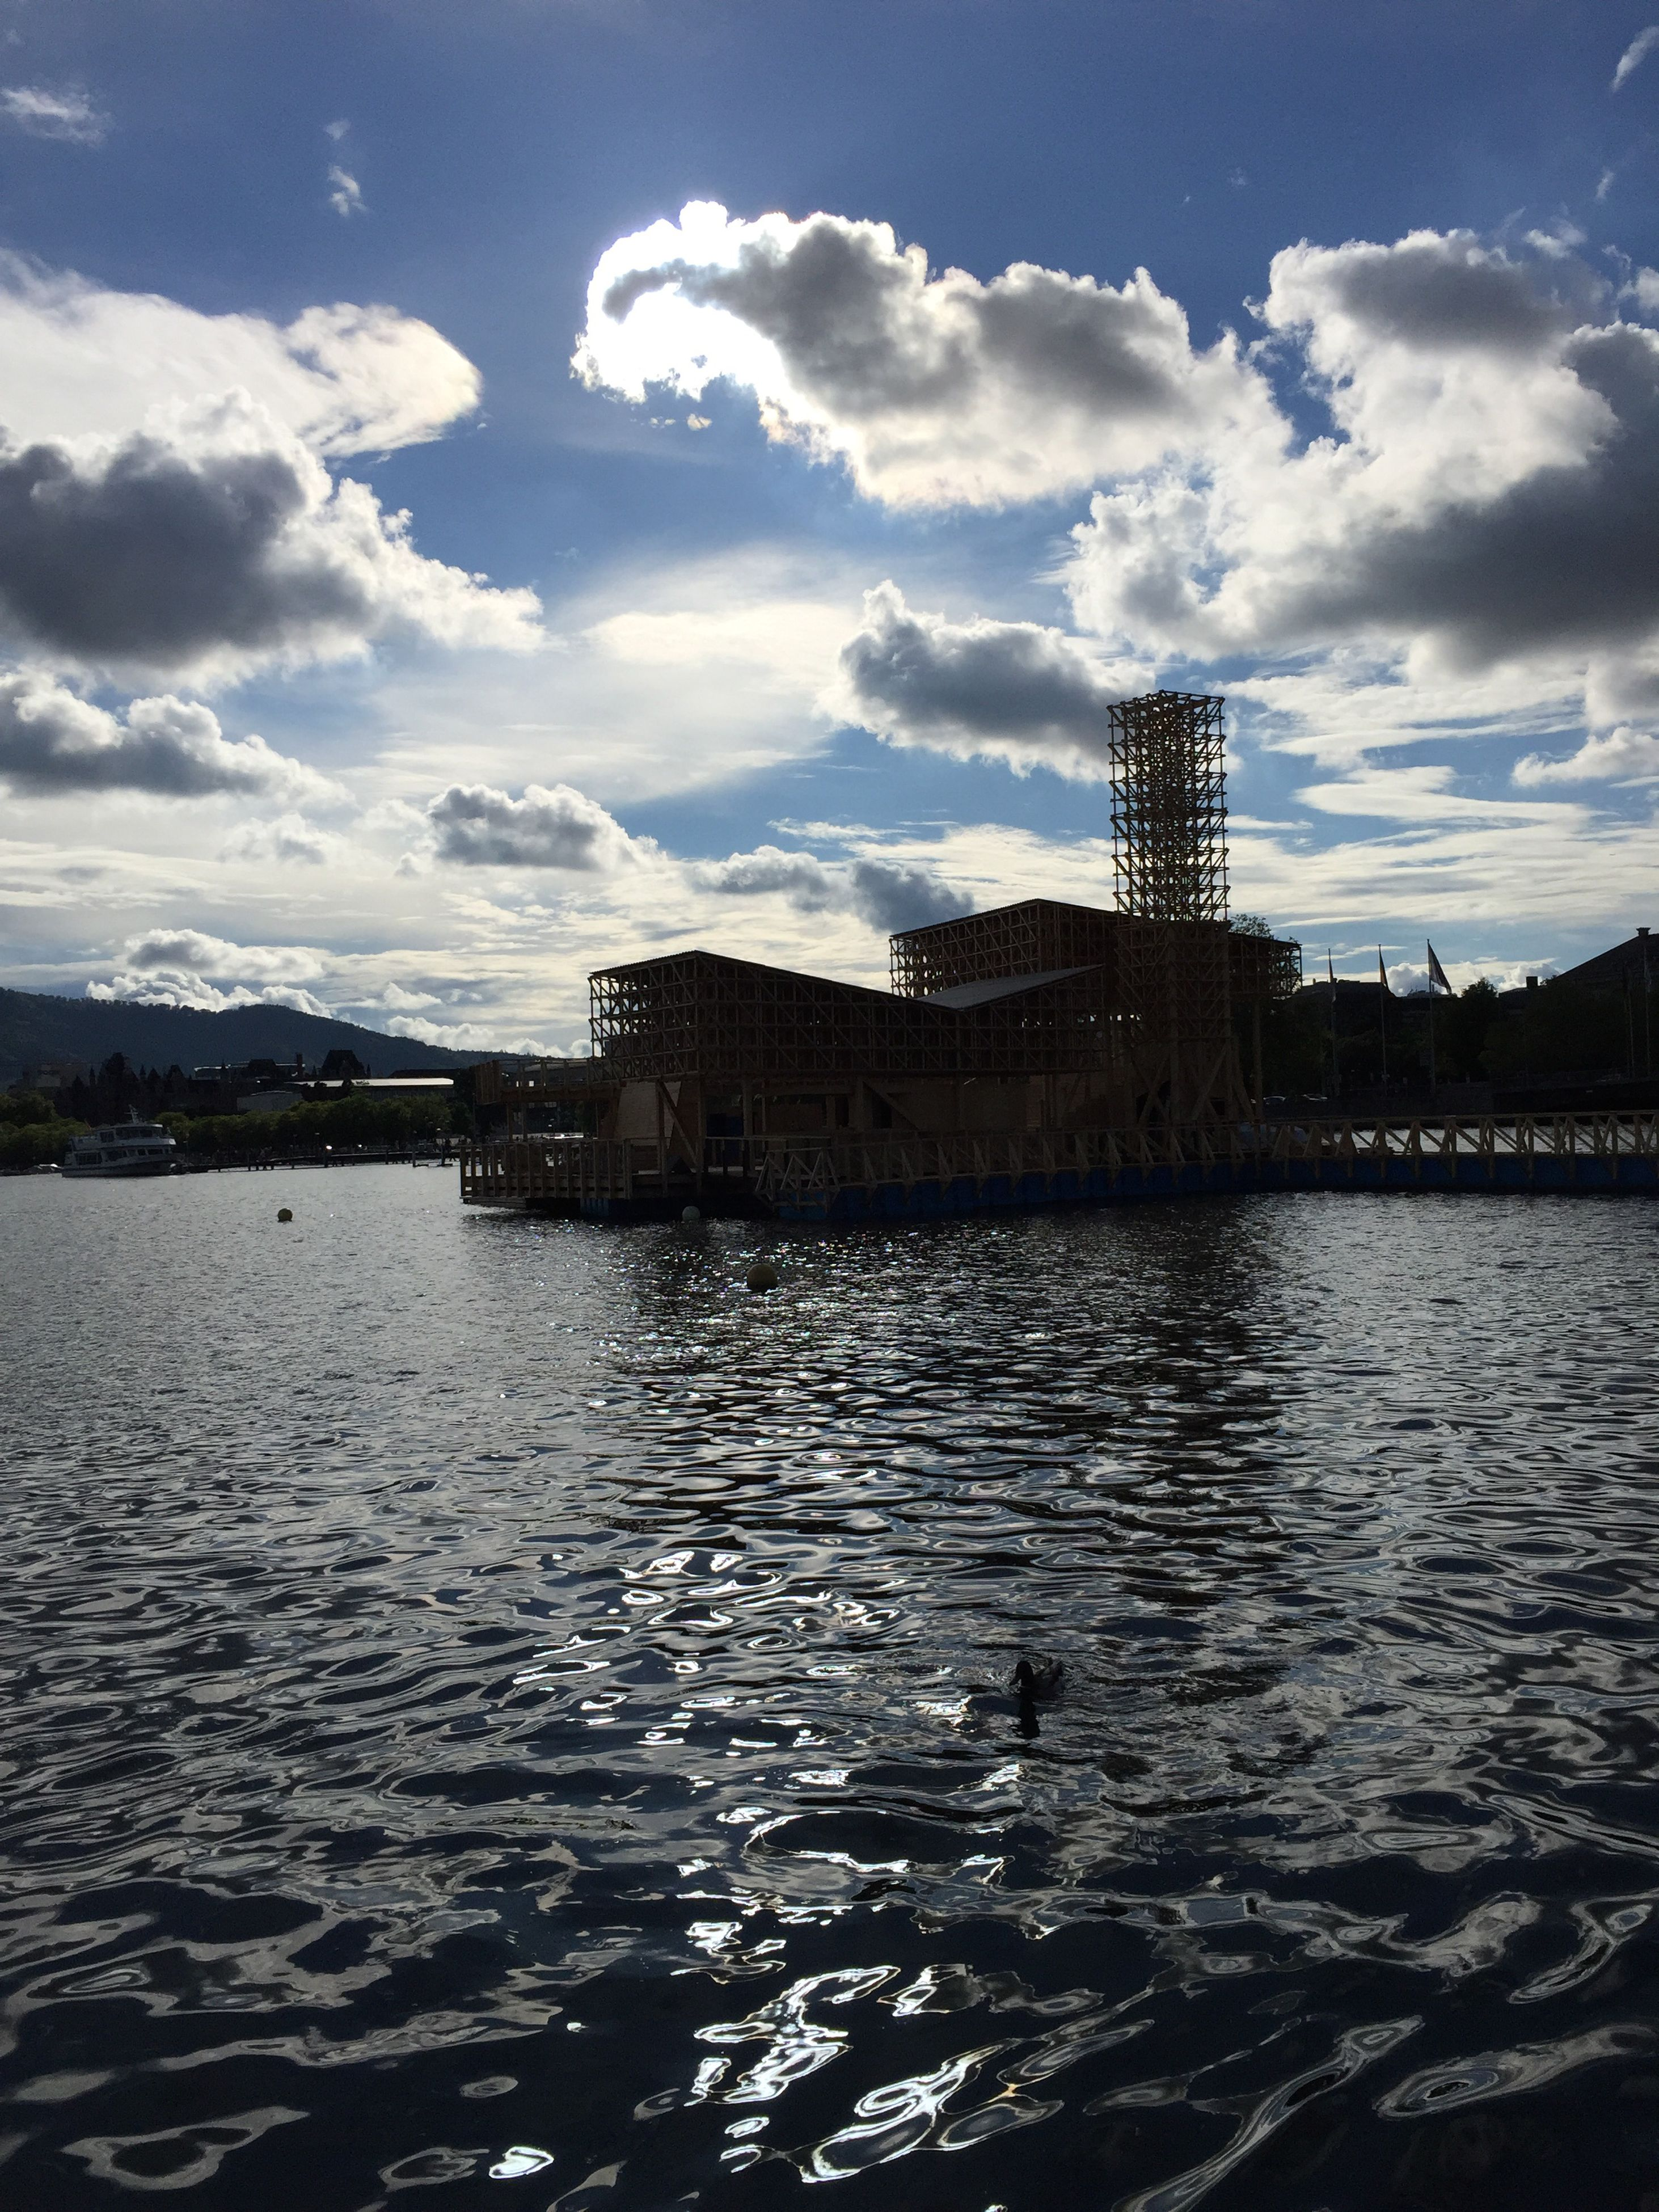 water, cloud - sky, sky, sea, city, nature, outdoors, architecture, built structure, no people, day, scenics, beauty in nature